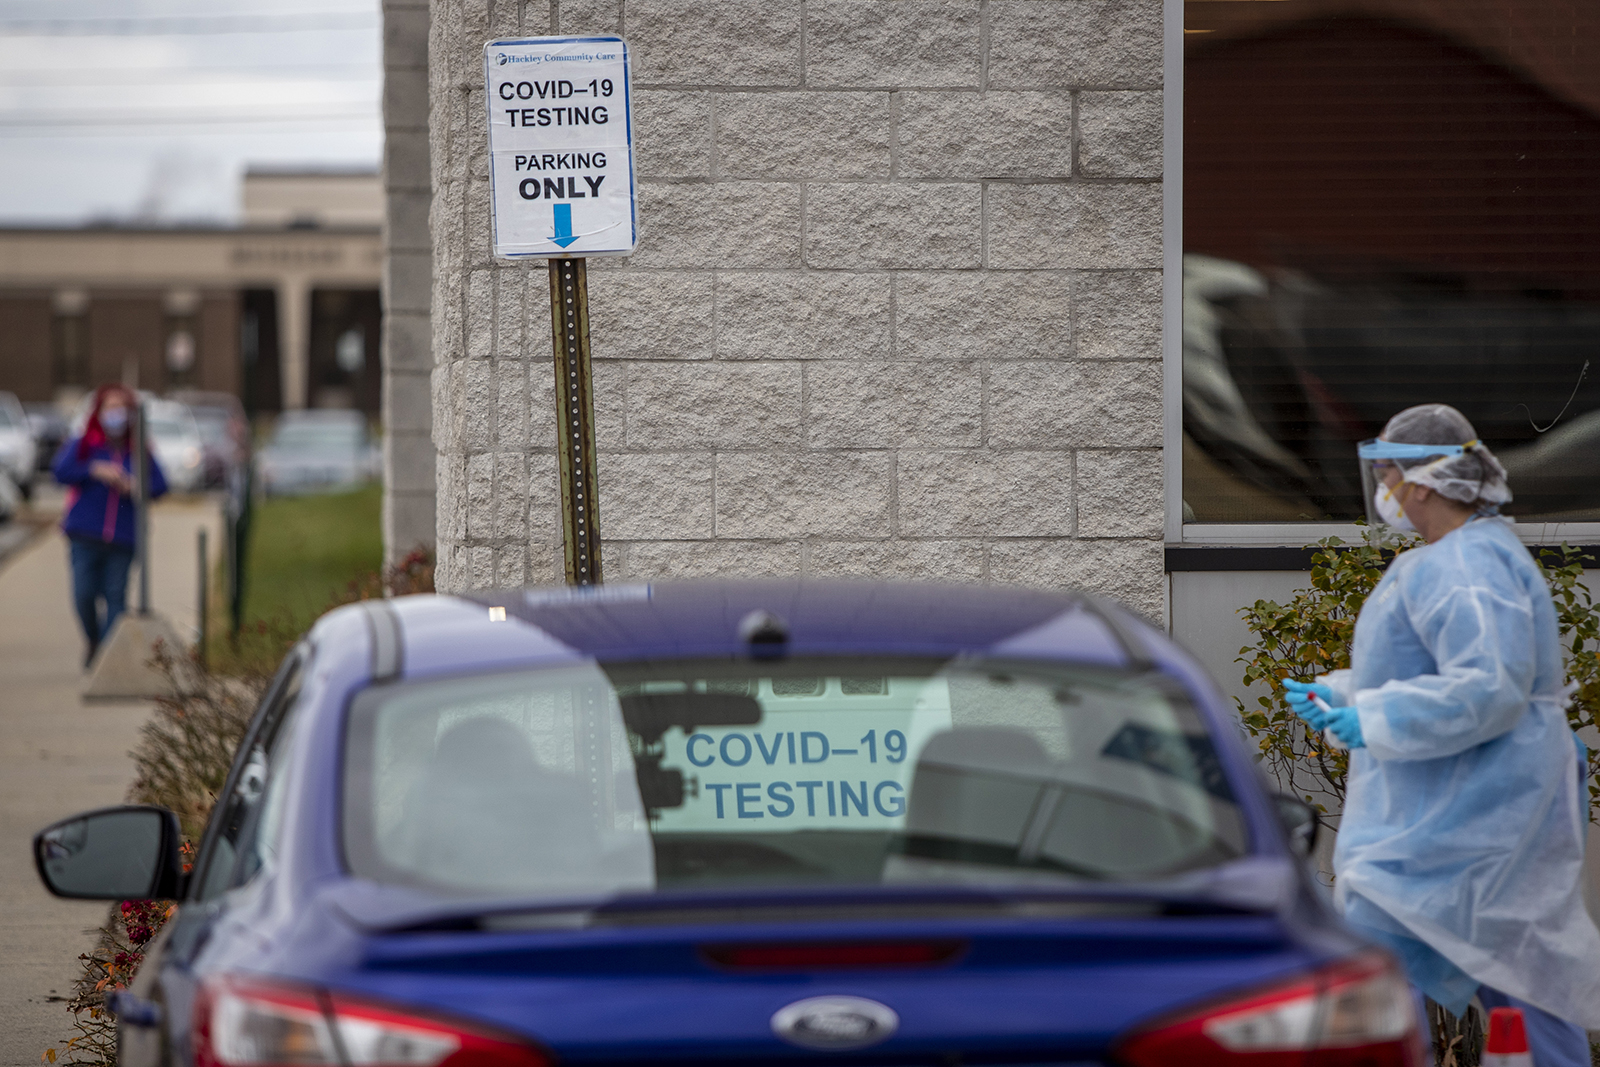 In this November 13 file photo, a nurse works at the Hackley Community Care Covid-19 curbside testing site in Muskegon Heights, Michigan.